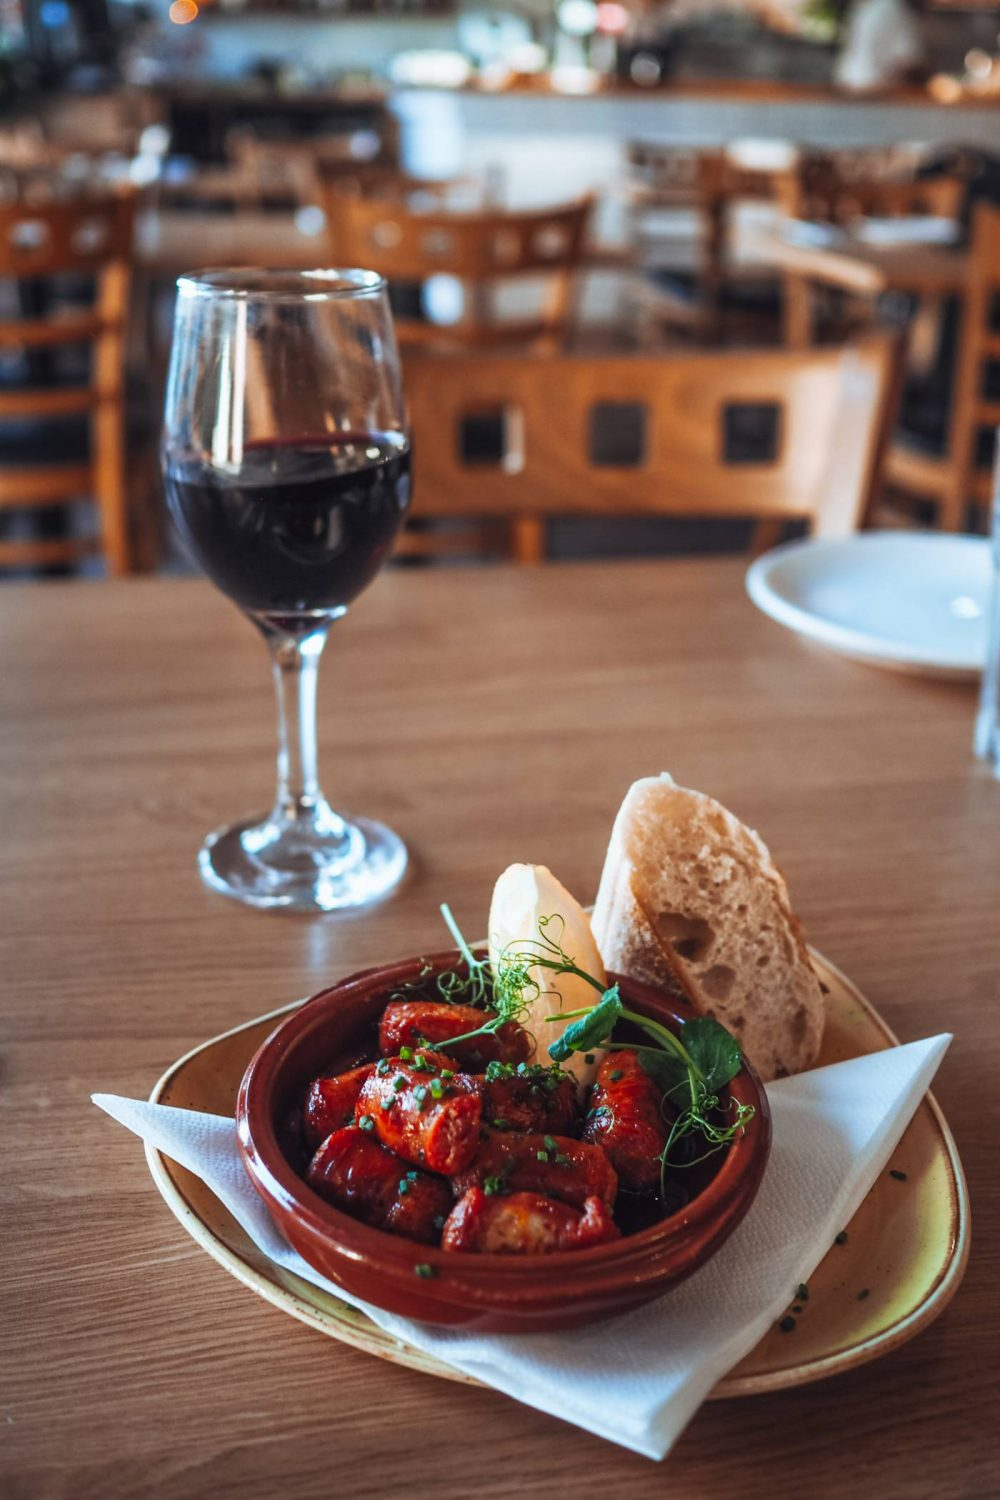 Chorizo and a glass of red wine at Olé Tapas Bar - Eat Out to Help out in Milton Keynes.